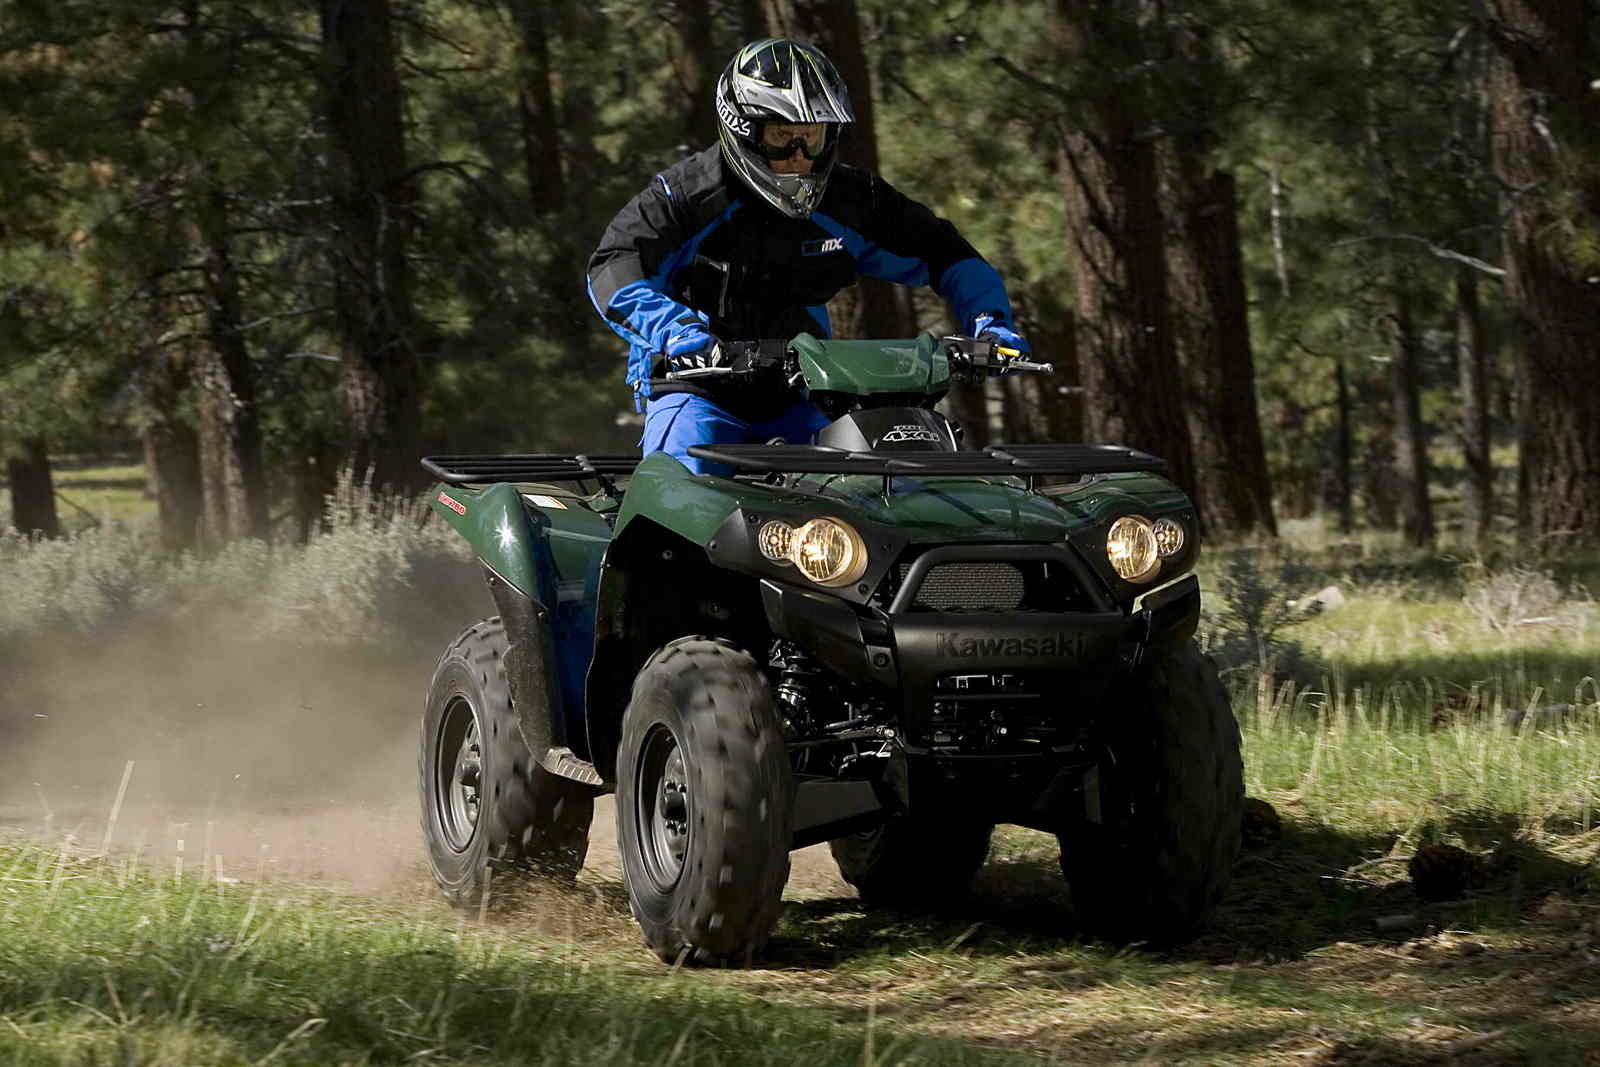 2007 kawasaki brute force 750 4x4i picture 158864 motorcycle review top speed. Black Bedroom Furniture Sets. Home Design Ideas